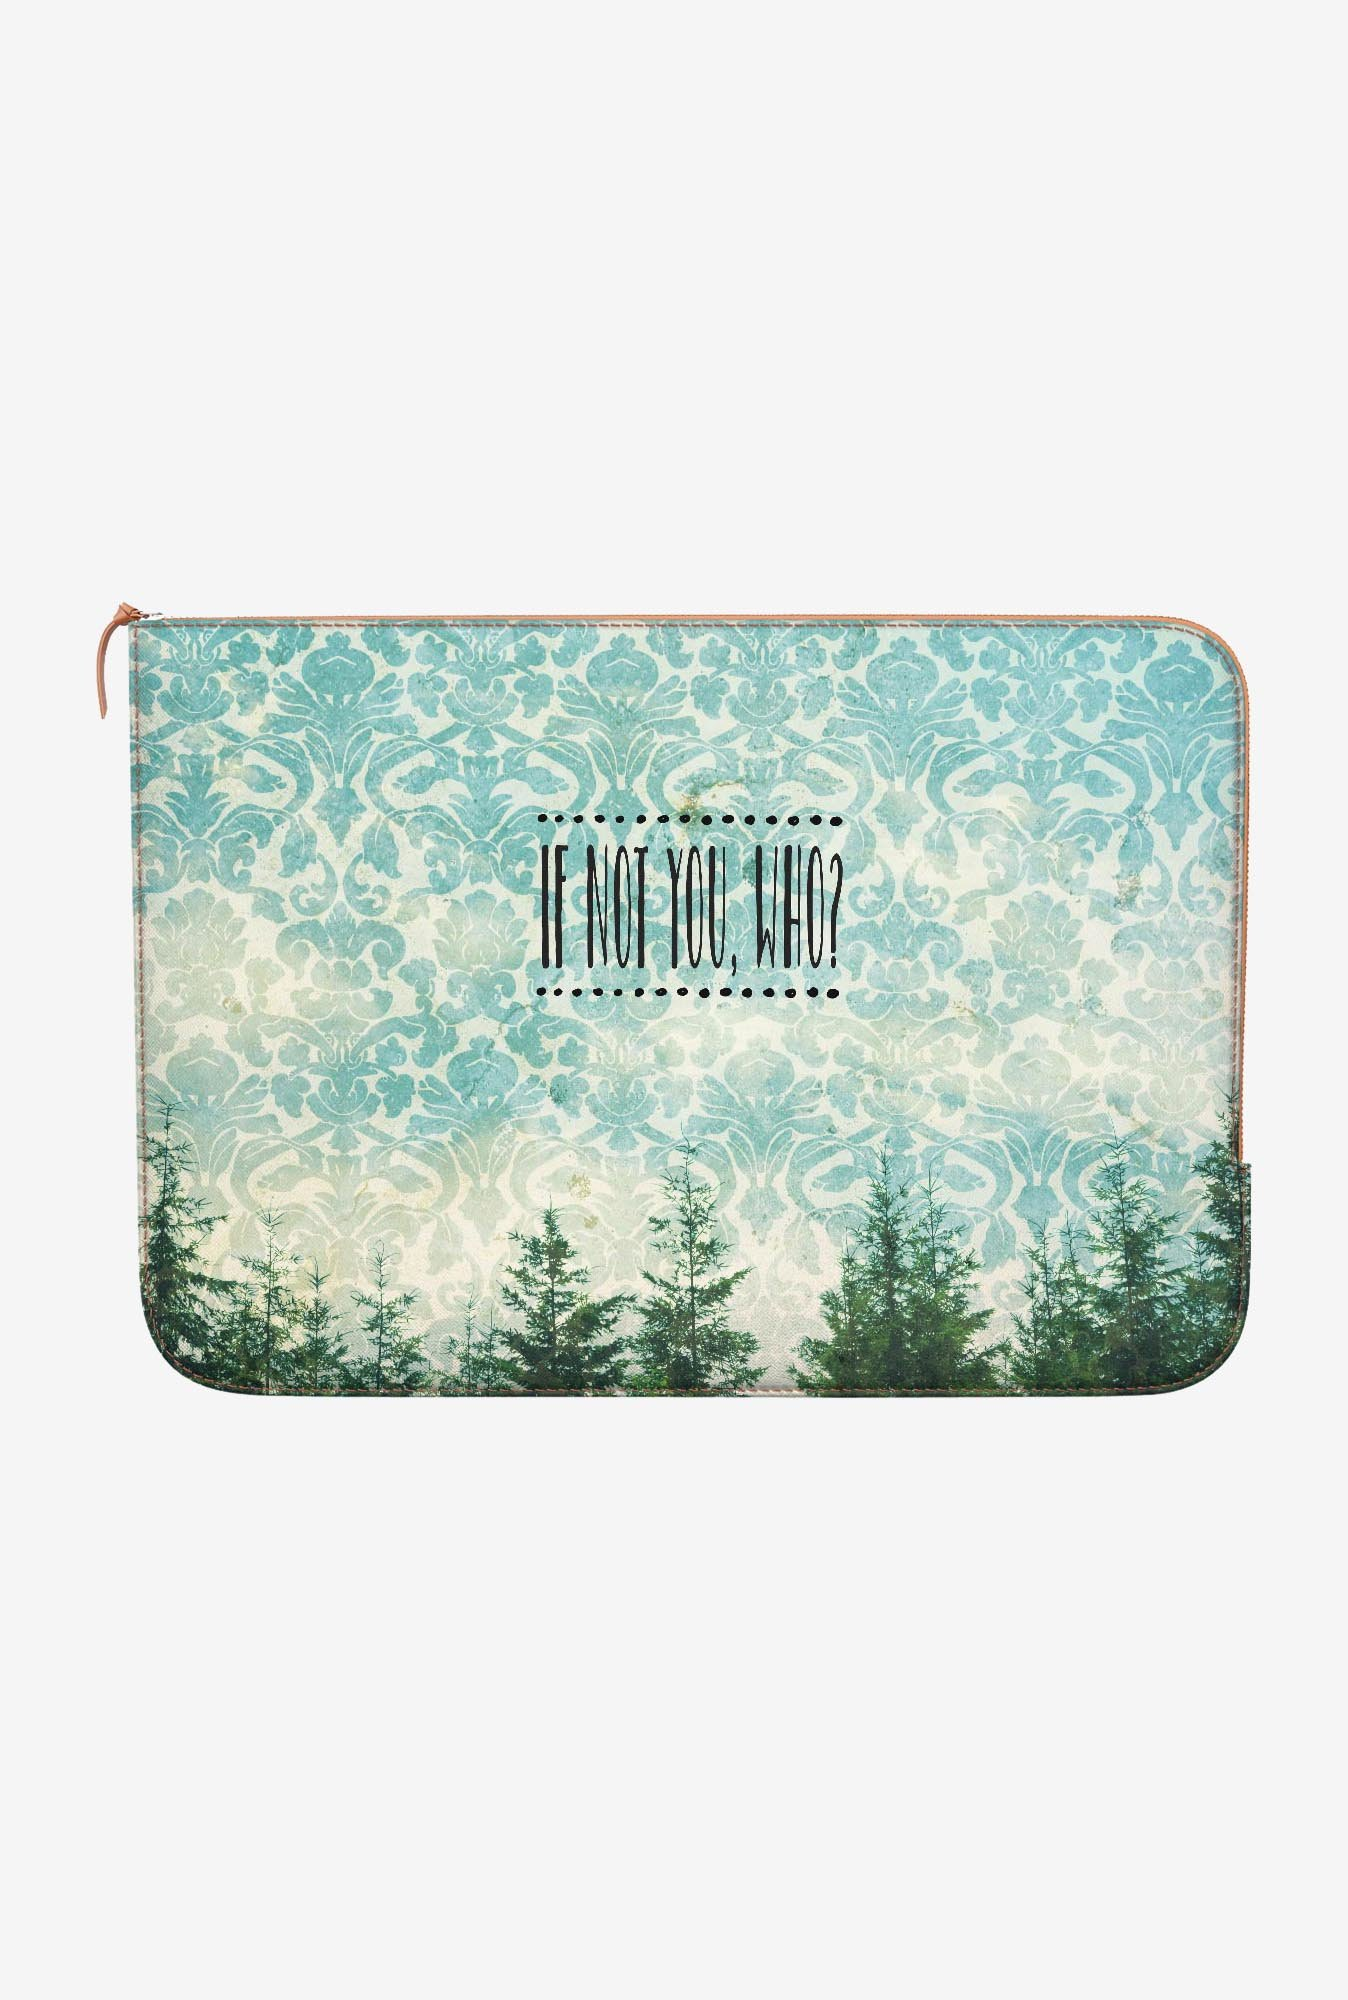 DailyObjects If Not You Who MacBook Pro 15 Zippered Sleeve